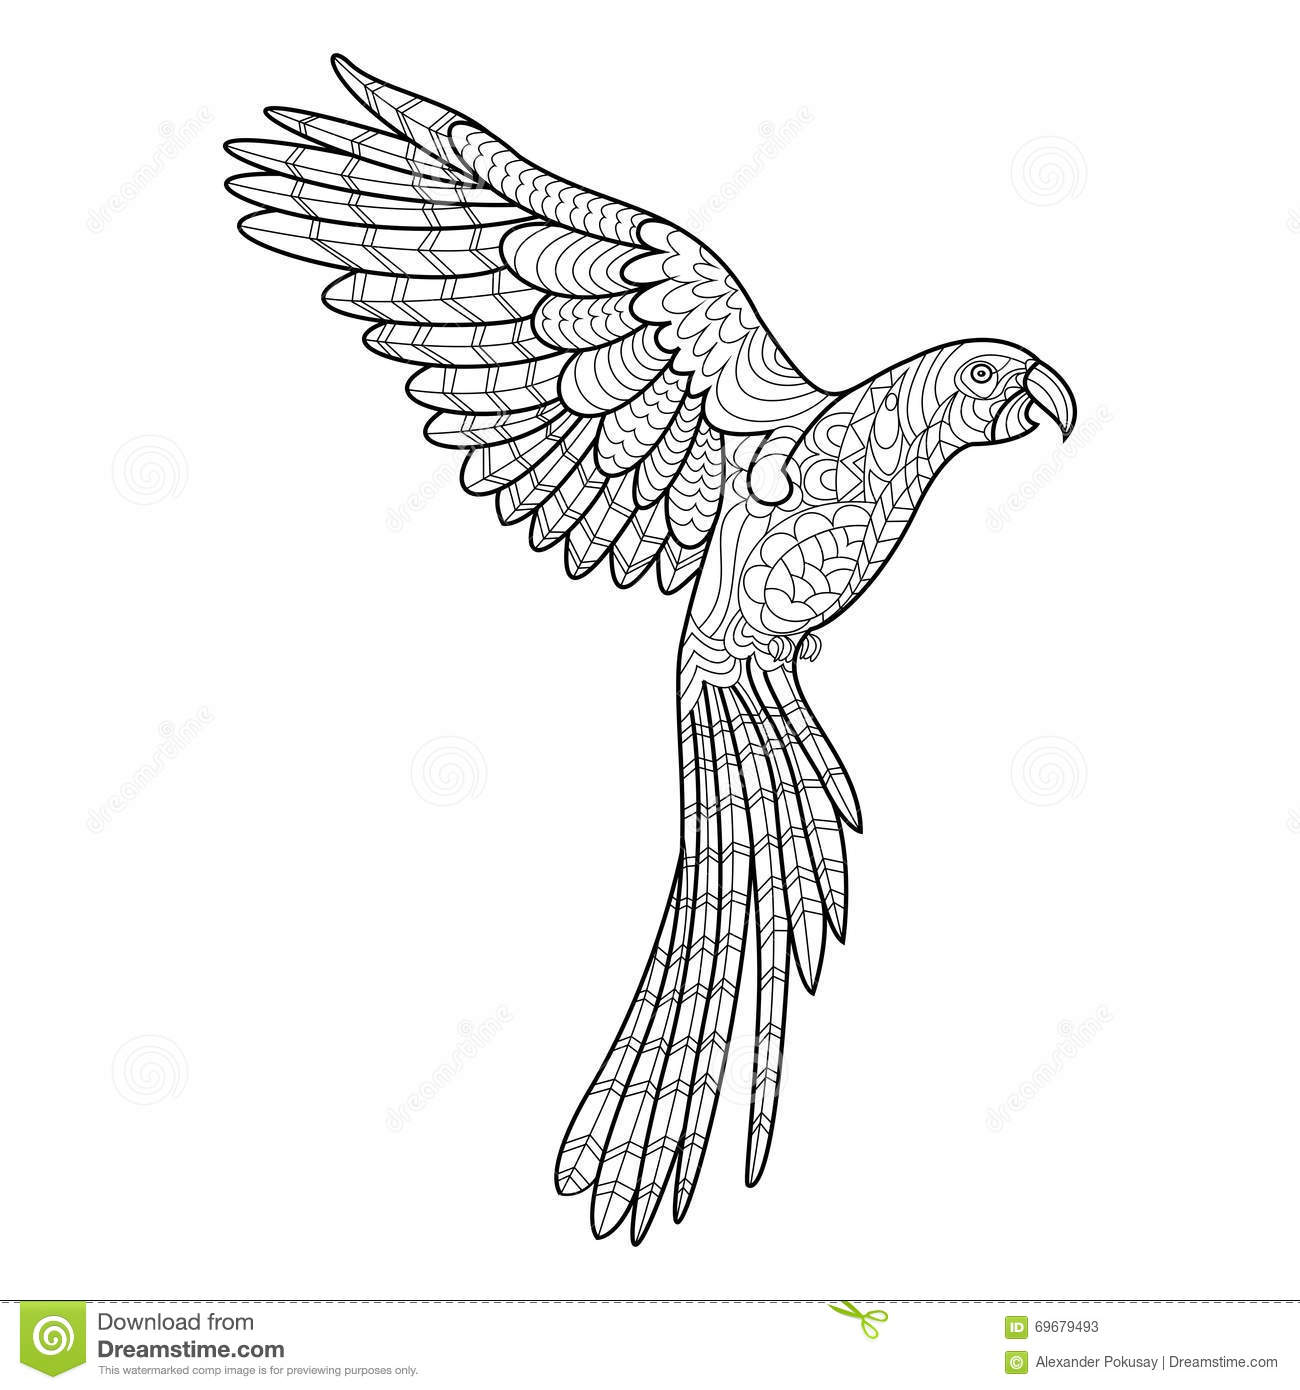 c1b921bbcdd0fc83dcd7eccdcbf2b4eb also two african grey parrots coloring pages likewise  likewise Coloring Pages of Parrot furthermore  also  also il 570xN 1192160315 oqxm in addition Parrot Color Pages as well 102c79293958f03b468a2aeff2355242 further kolorowanki dla doroslych ptaki3 800x1132 furthermore 4316f0416916714b5b0eb75ddac5c4b6. on macaw coloring pages for adults